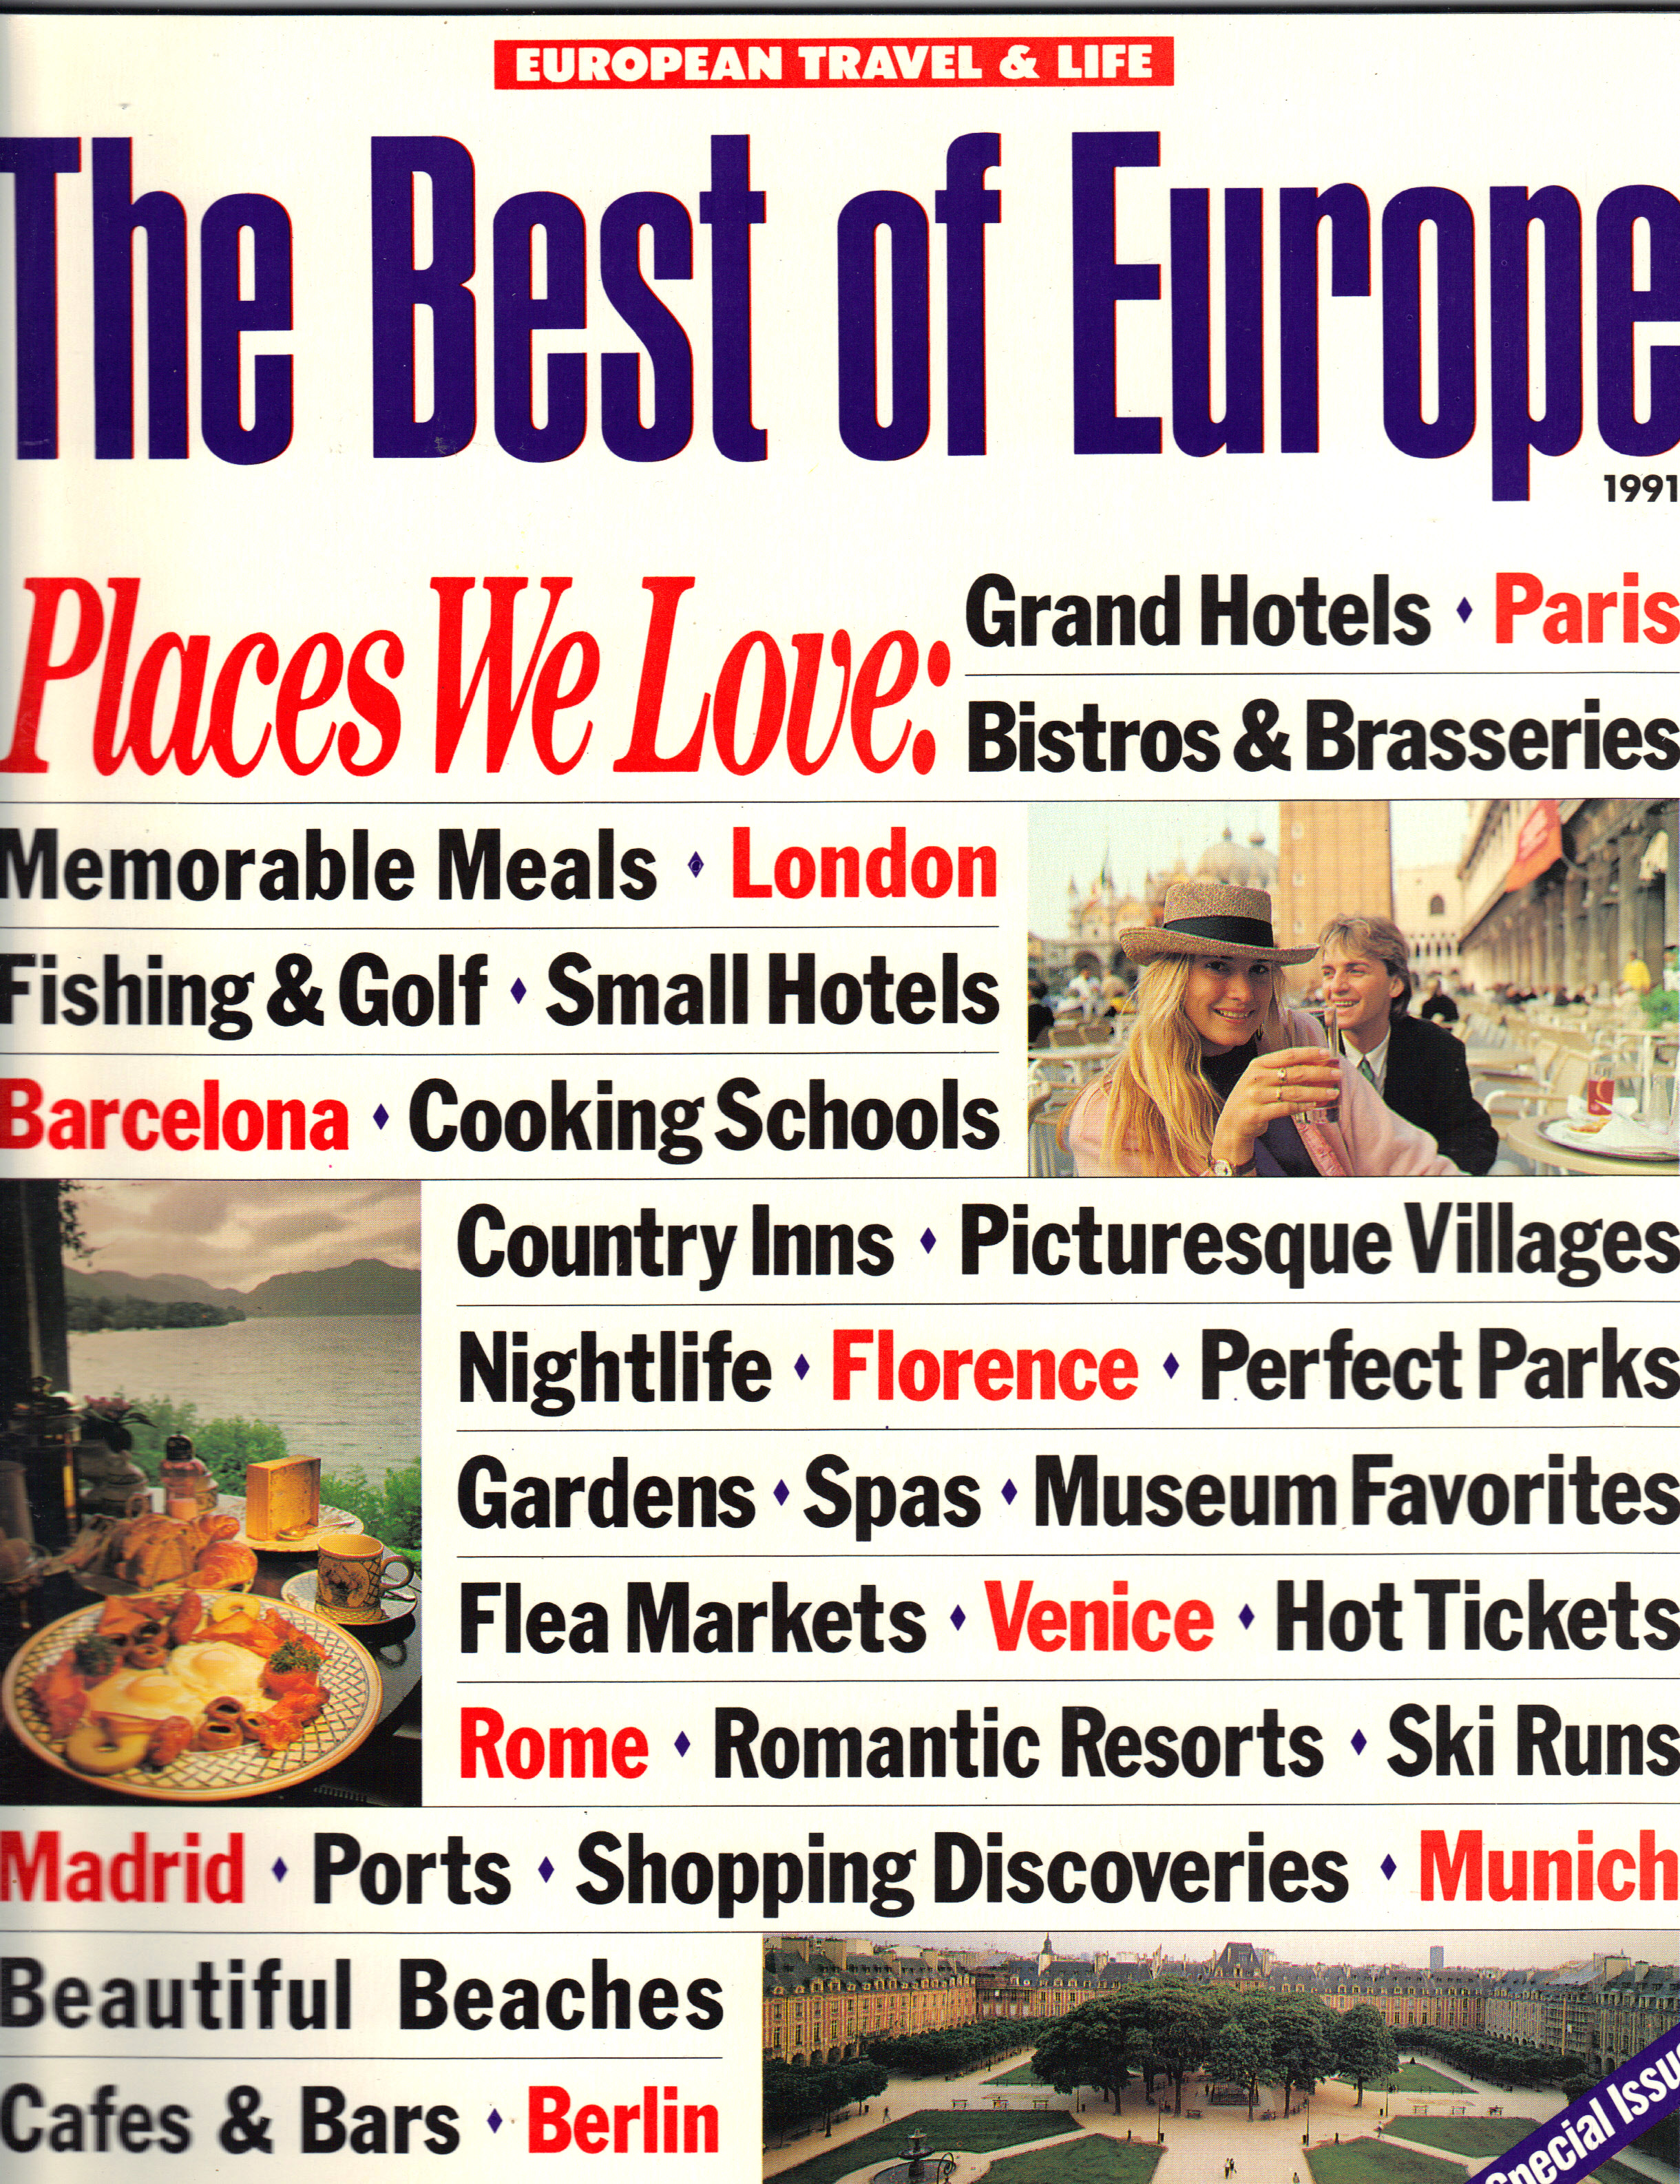 Image for THE BEST OF EUROPE 1991, Special Issue